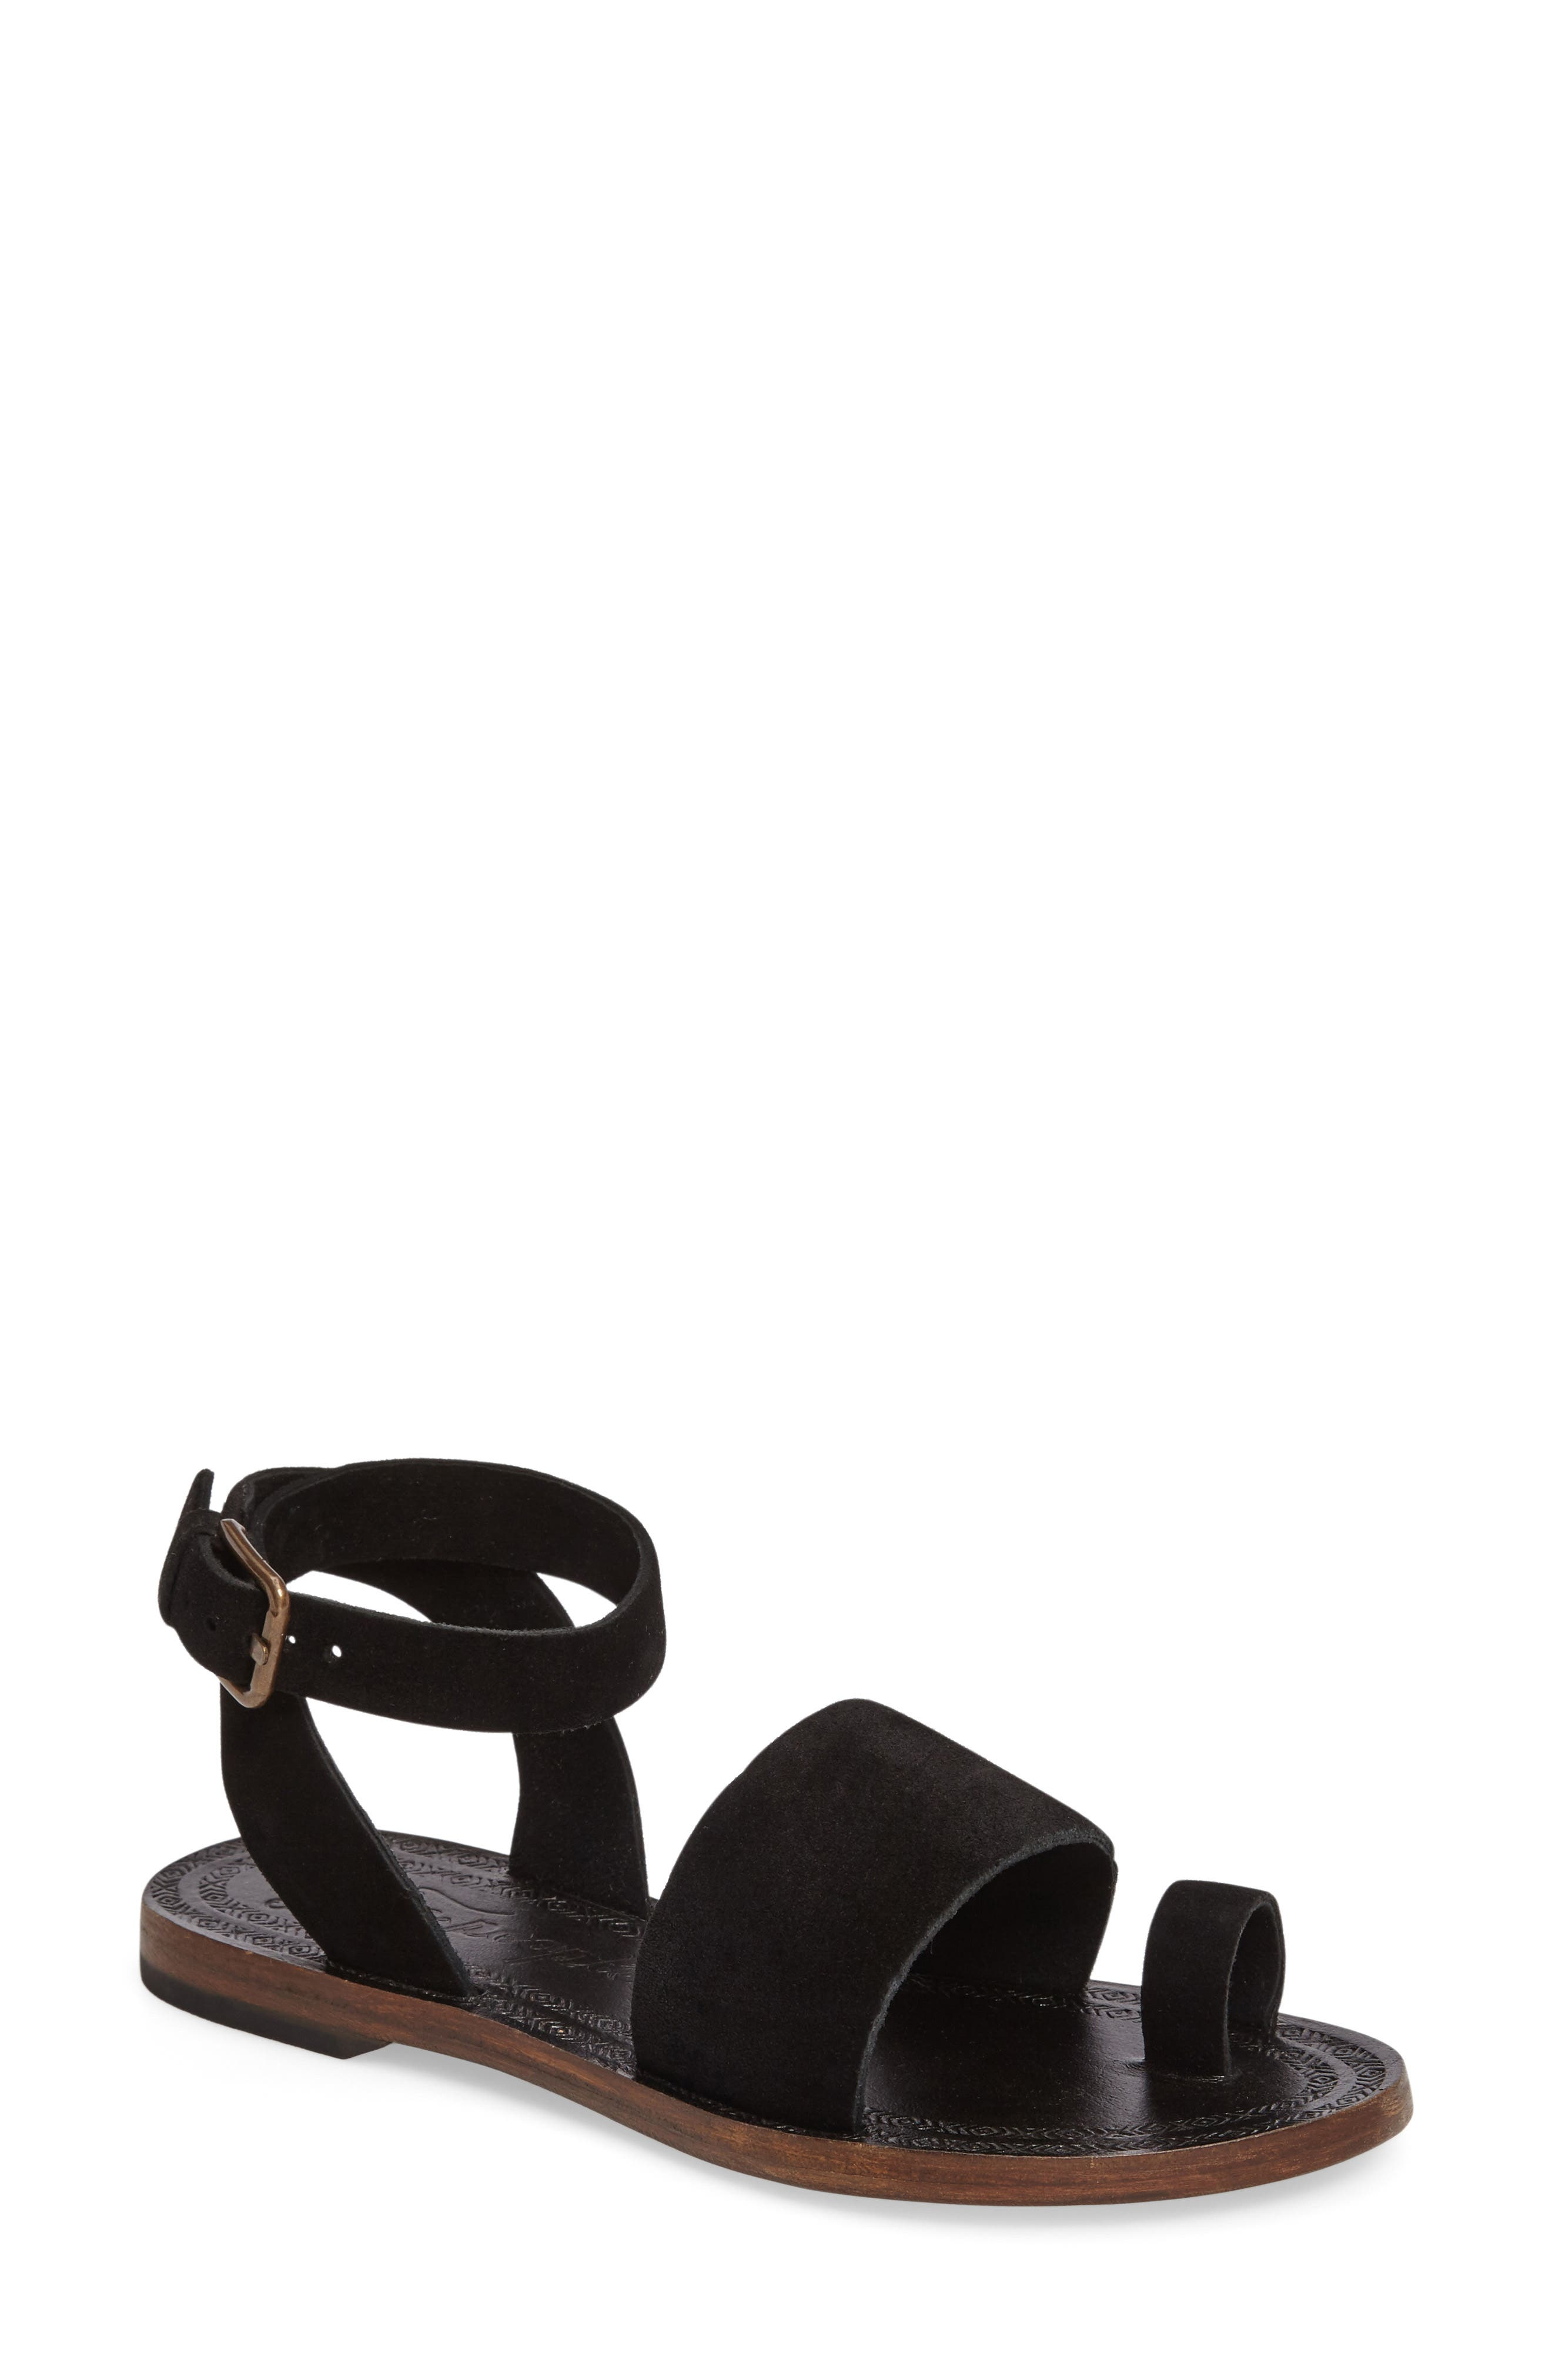 Torrence Ankle Wrap Sandal,                             Main thumbnail 1, color,                             001